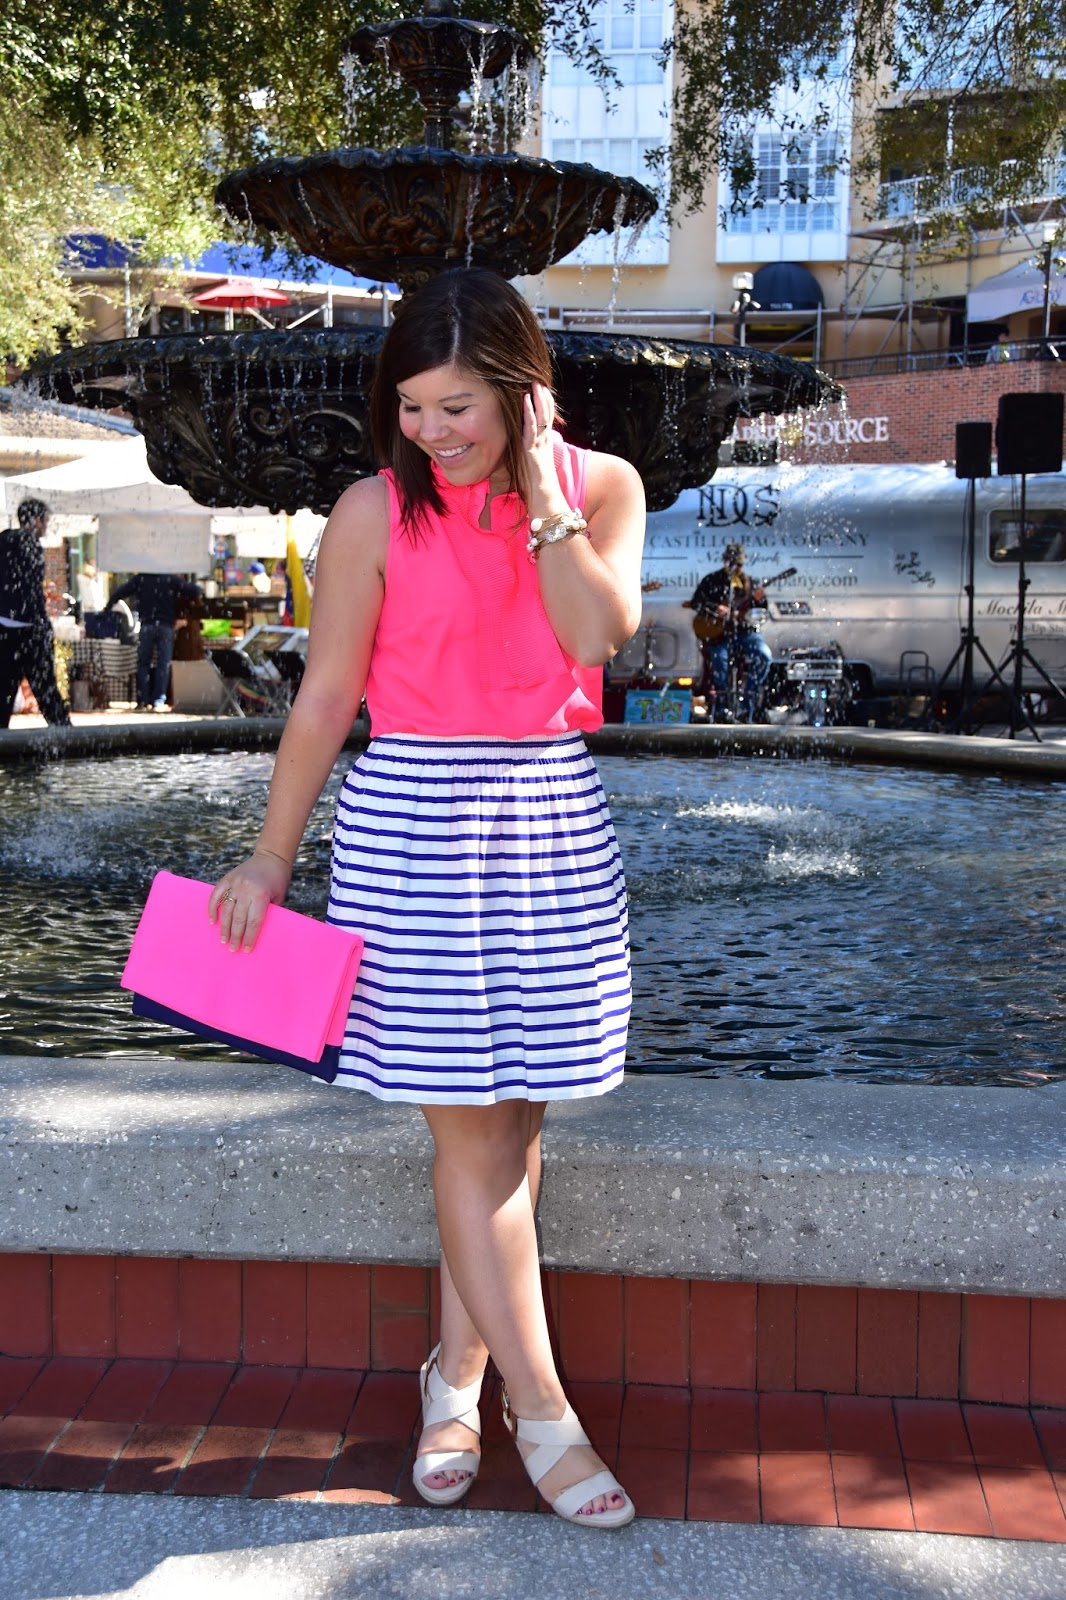 Pretty in Pink (& Stripes)